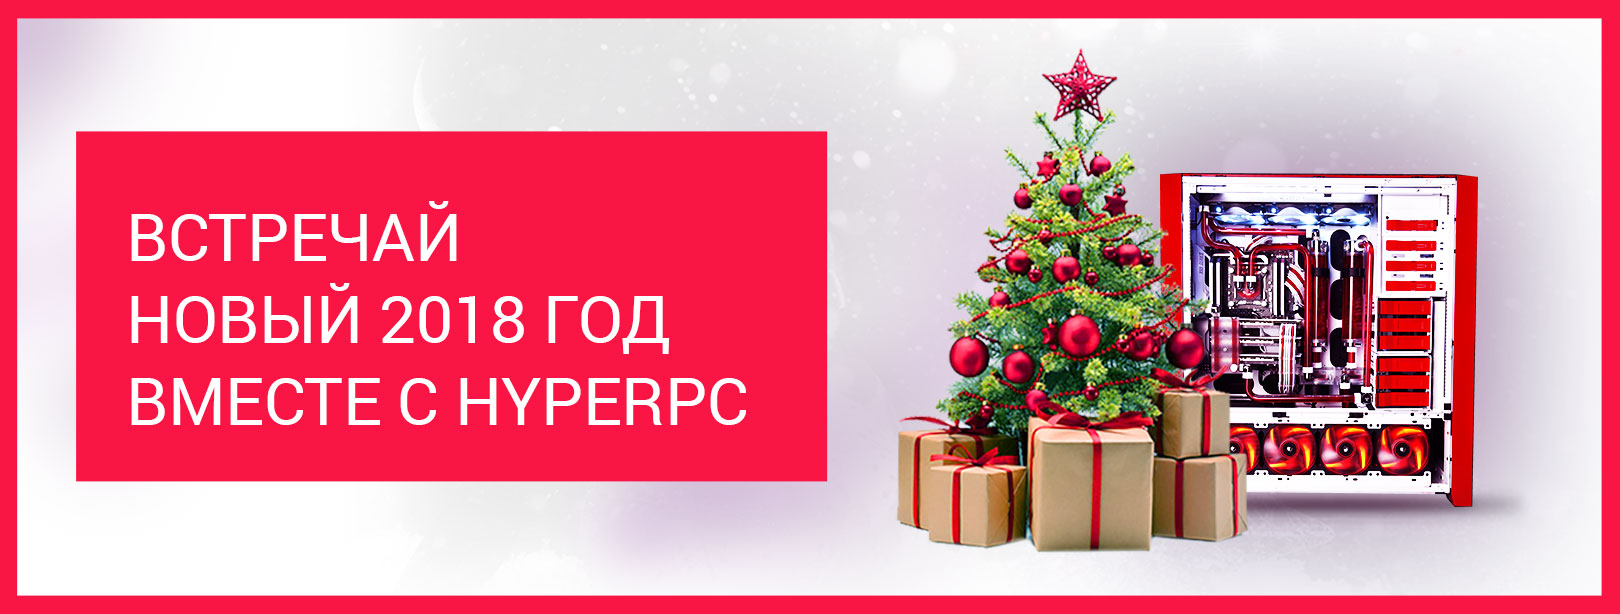 hyperpc new year 2018